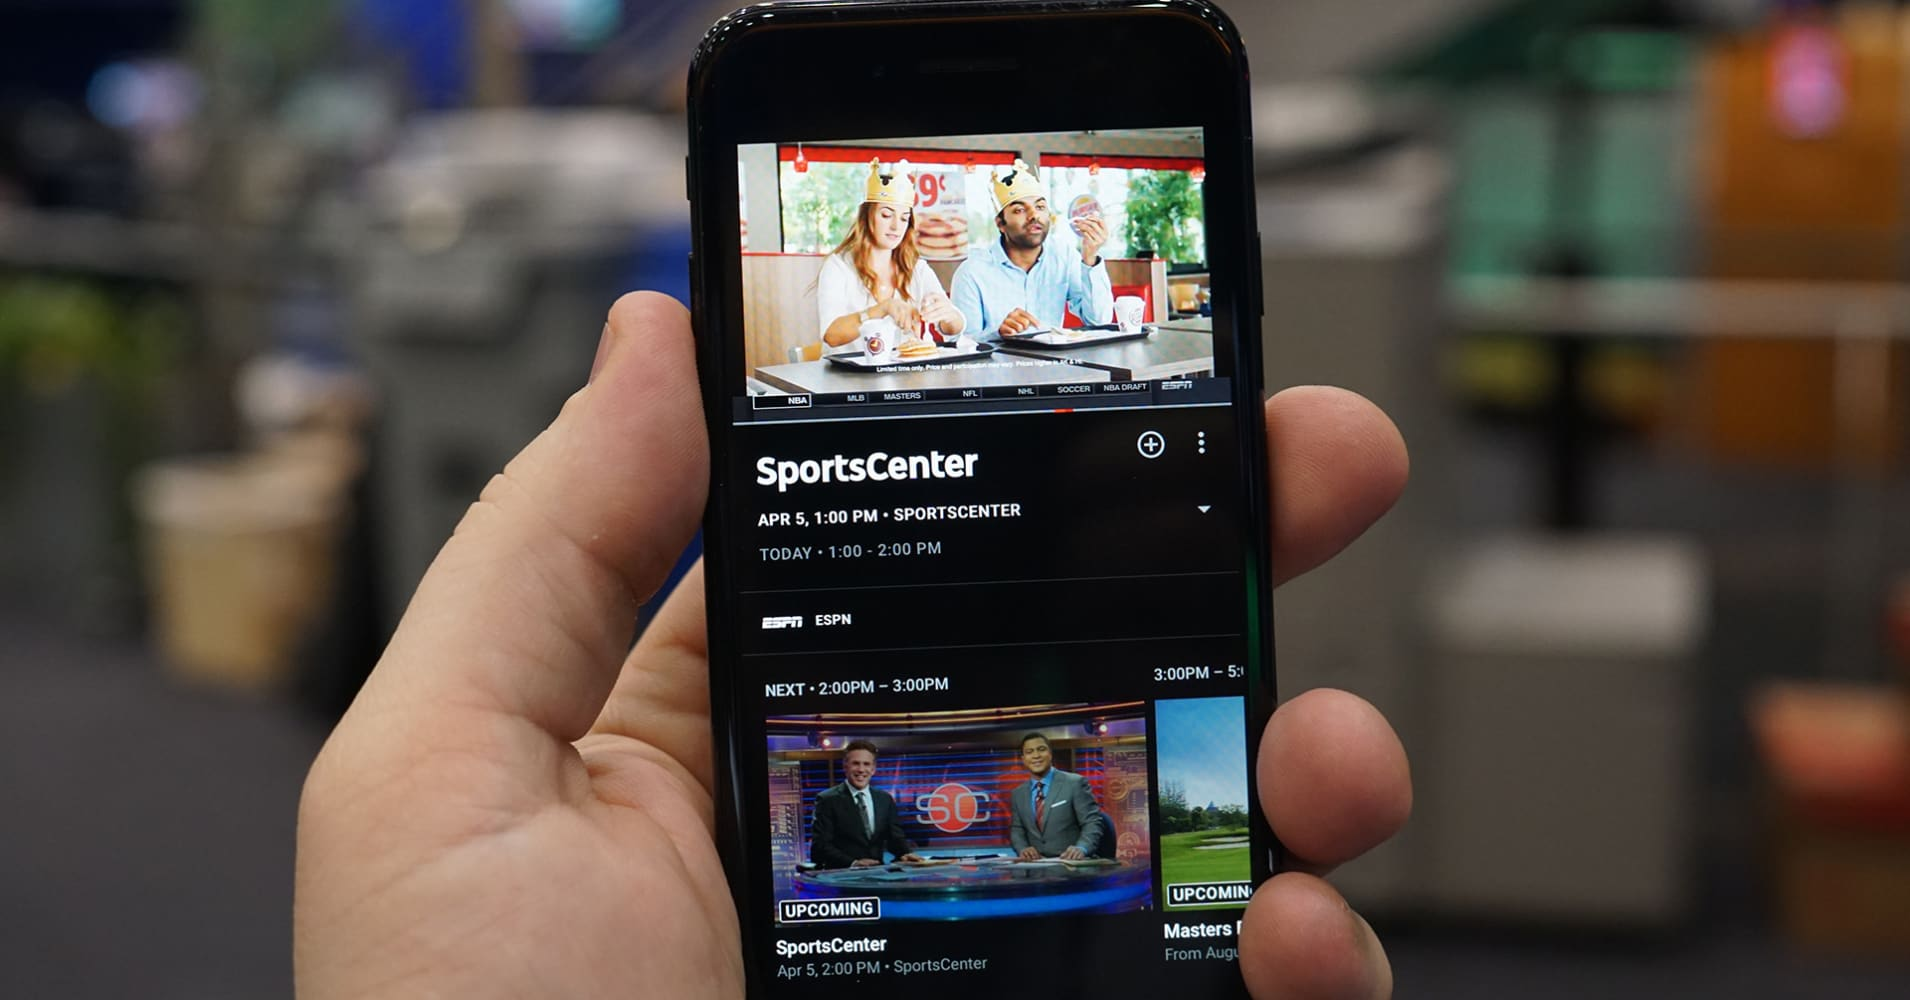 Financeyahoo A First Look At Googles YouTube TV Streaming Service Slim Pickings